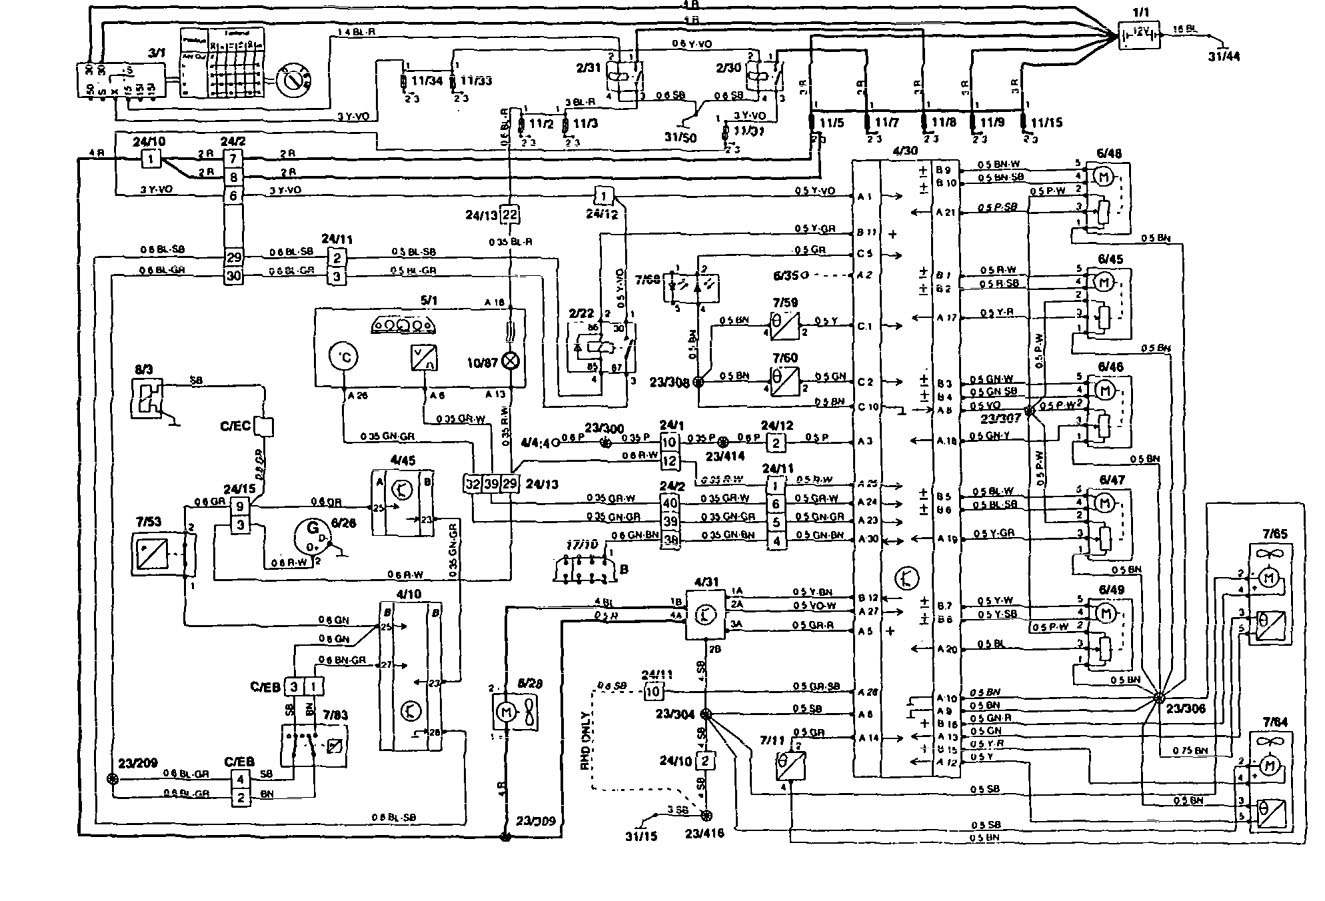 hight resolution of ford 850 wiring diagram schema diagram databasevolvo wiring harness diagram wiring diagram database ford 850 wiring